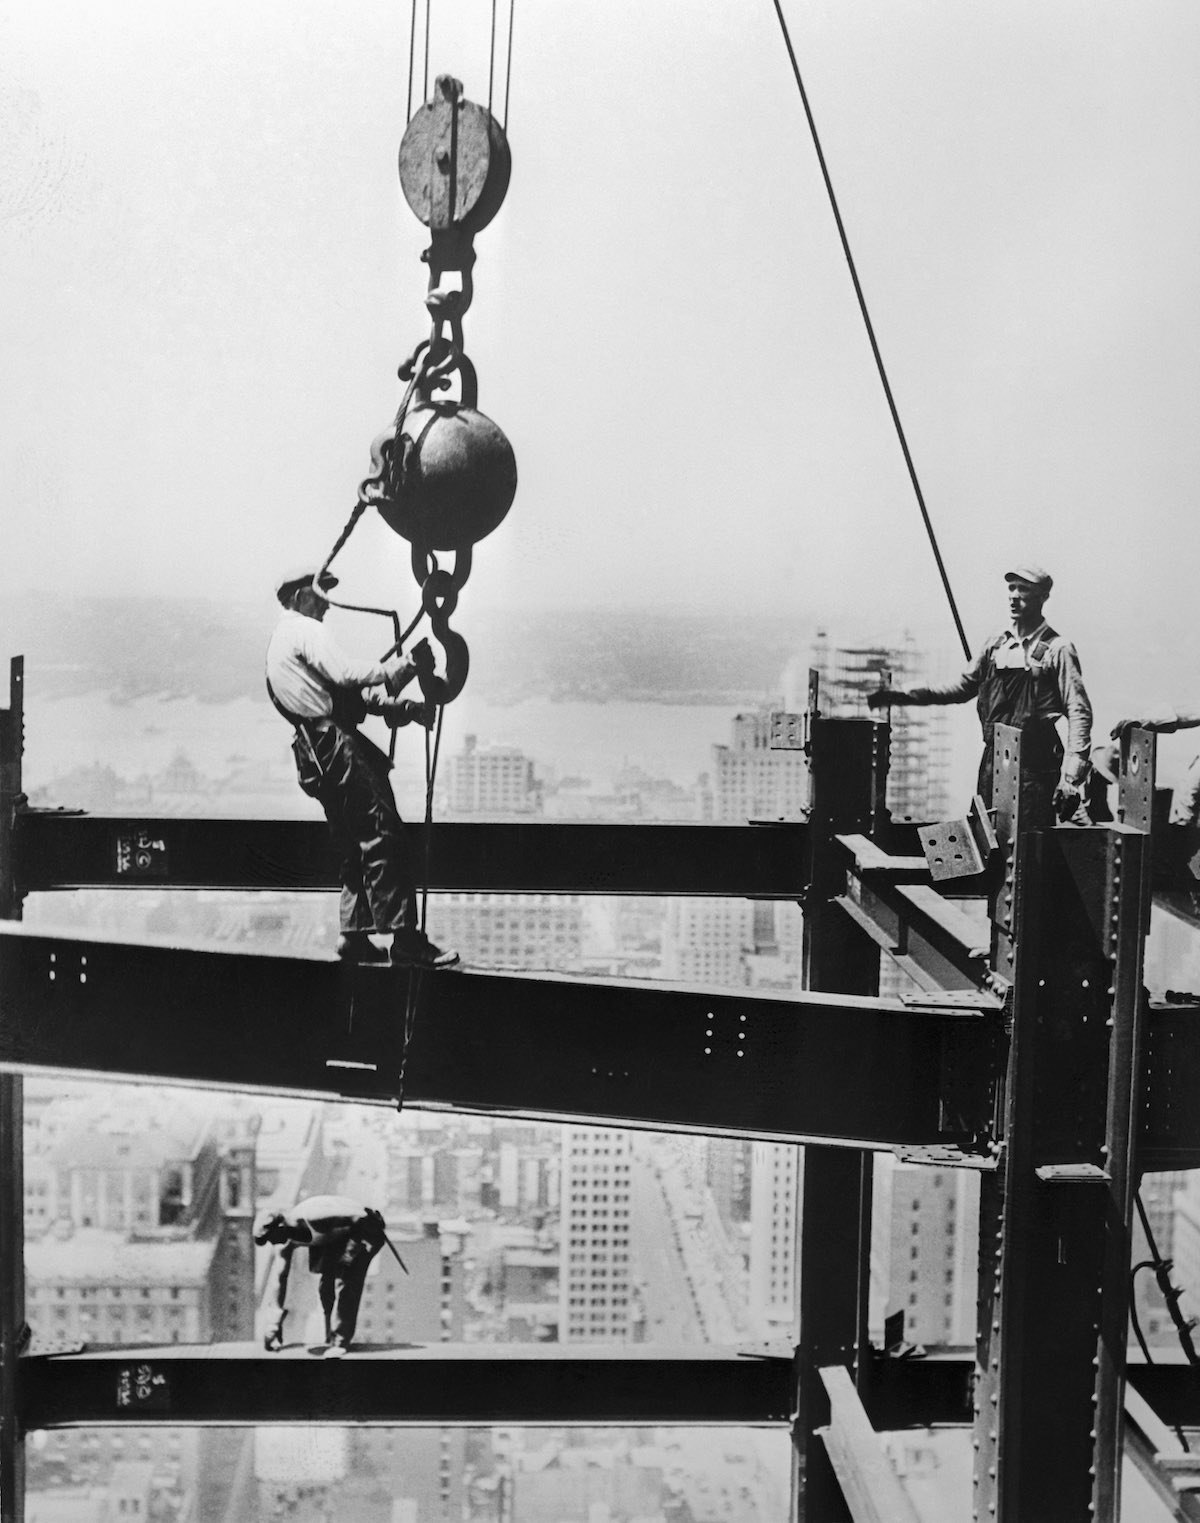 Men on Beams in Air at Construction Site